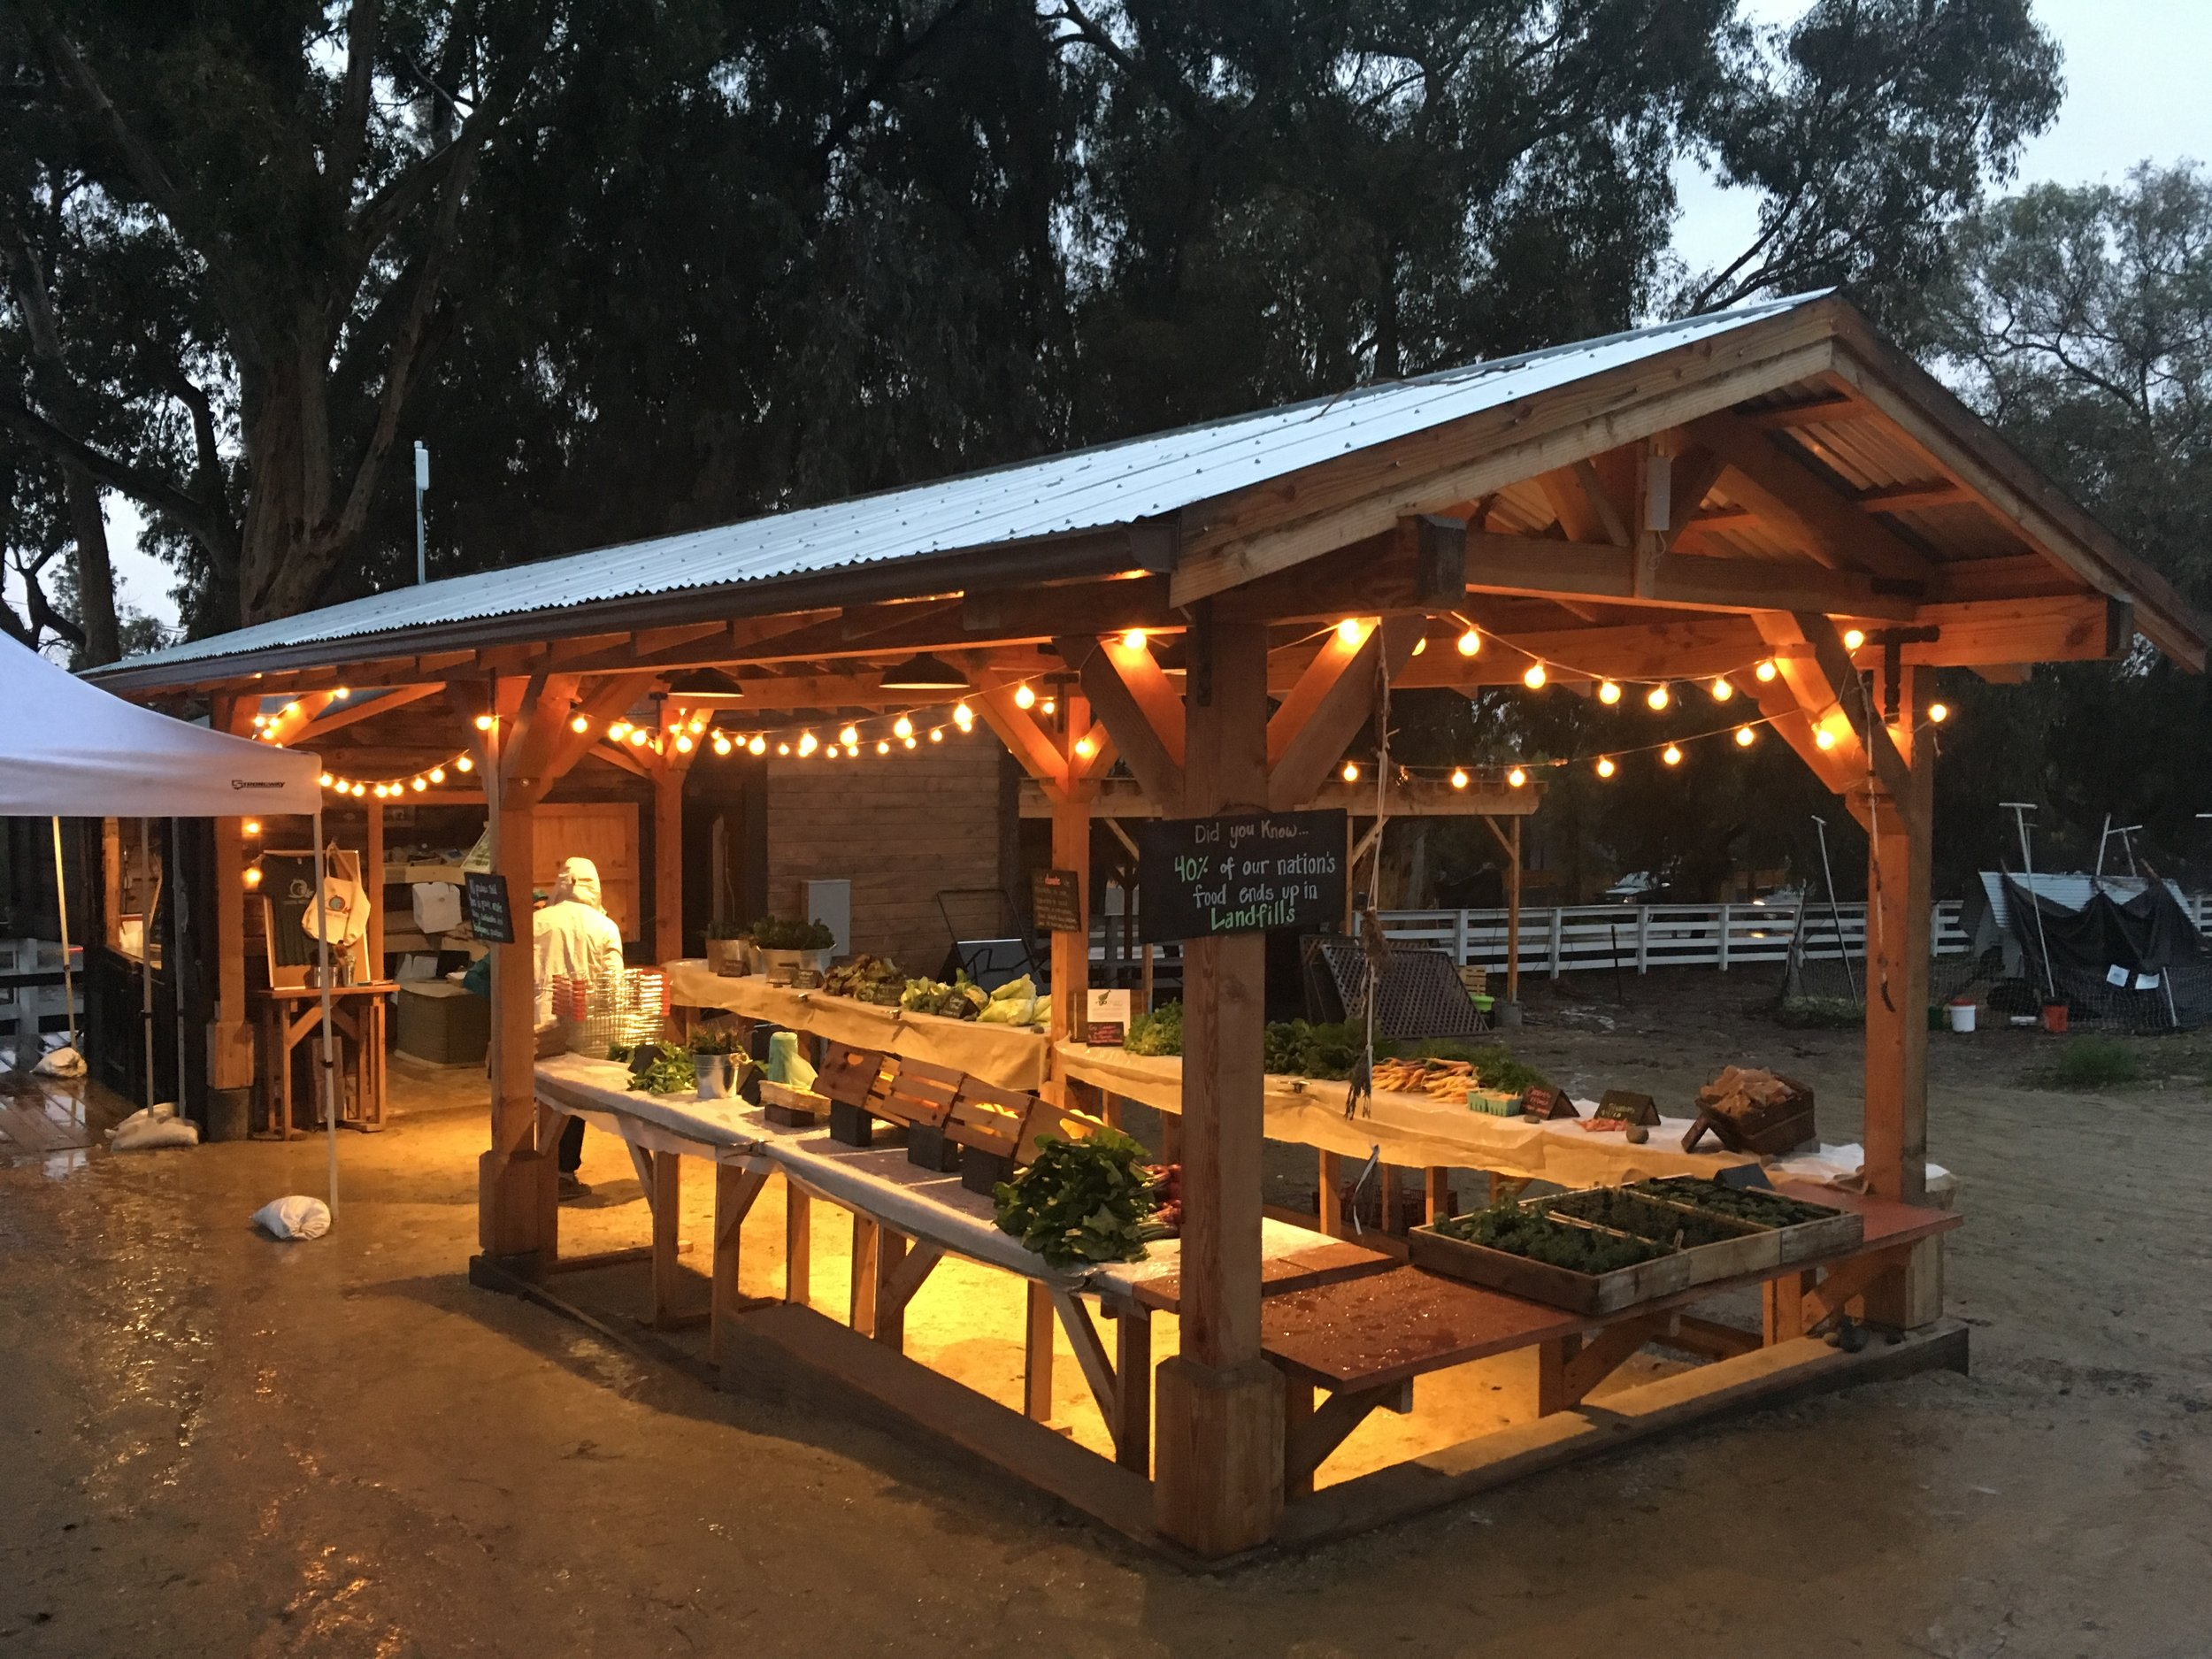 COASTAL ROOTS   A NON-PROFIT FARM THAT IS OPEN TWO DAYS A WEEK AND IT'S PAY WHAT YOU CAN!!!